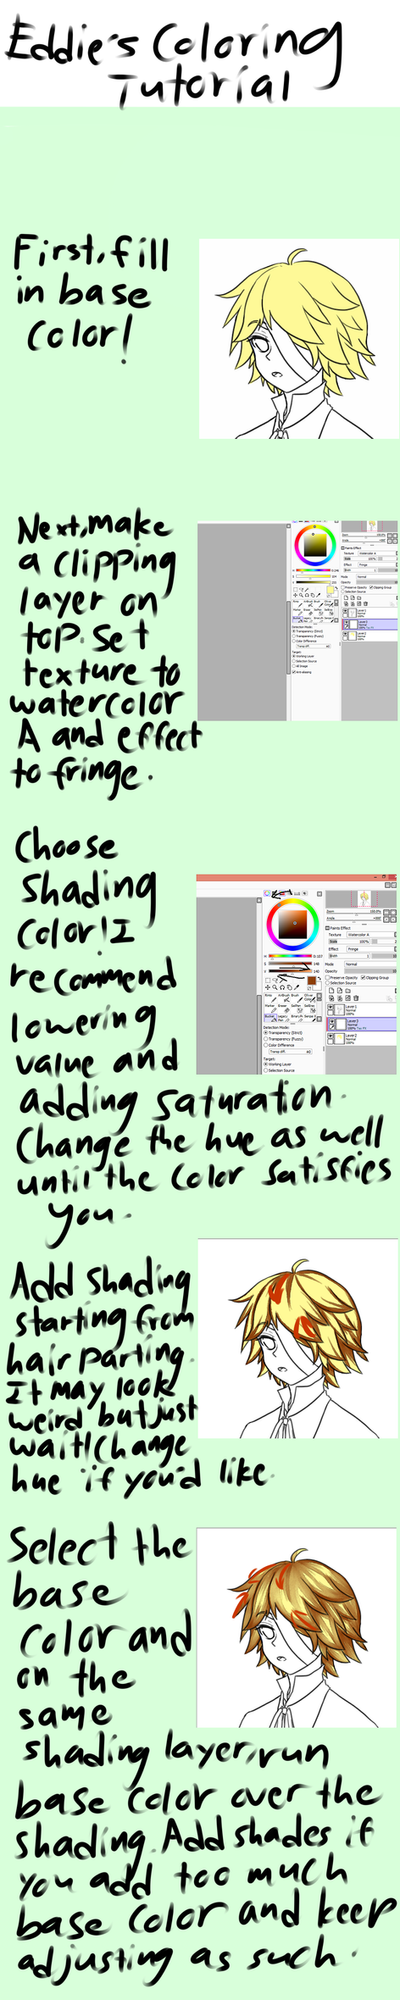 Hair Coloring Tutorial by Boots5301